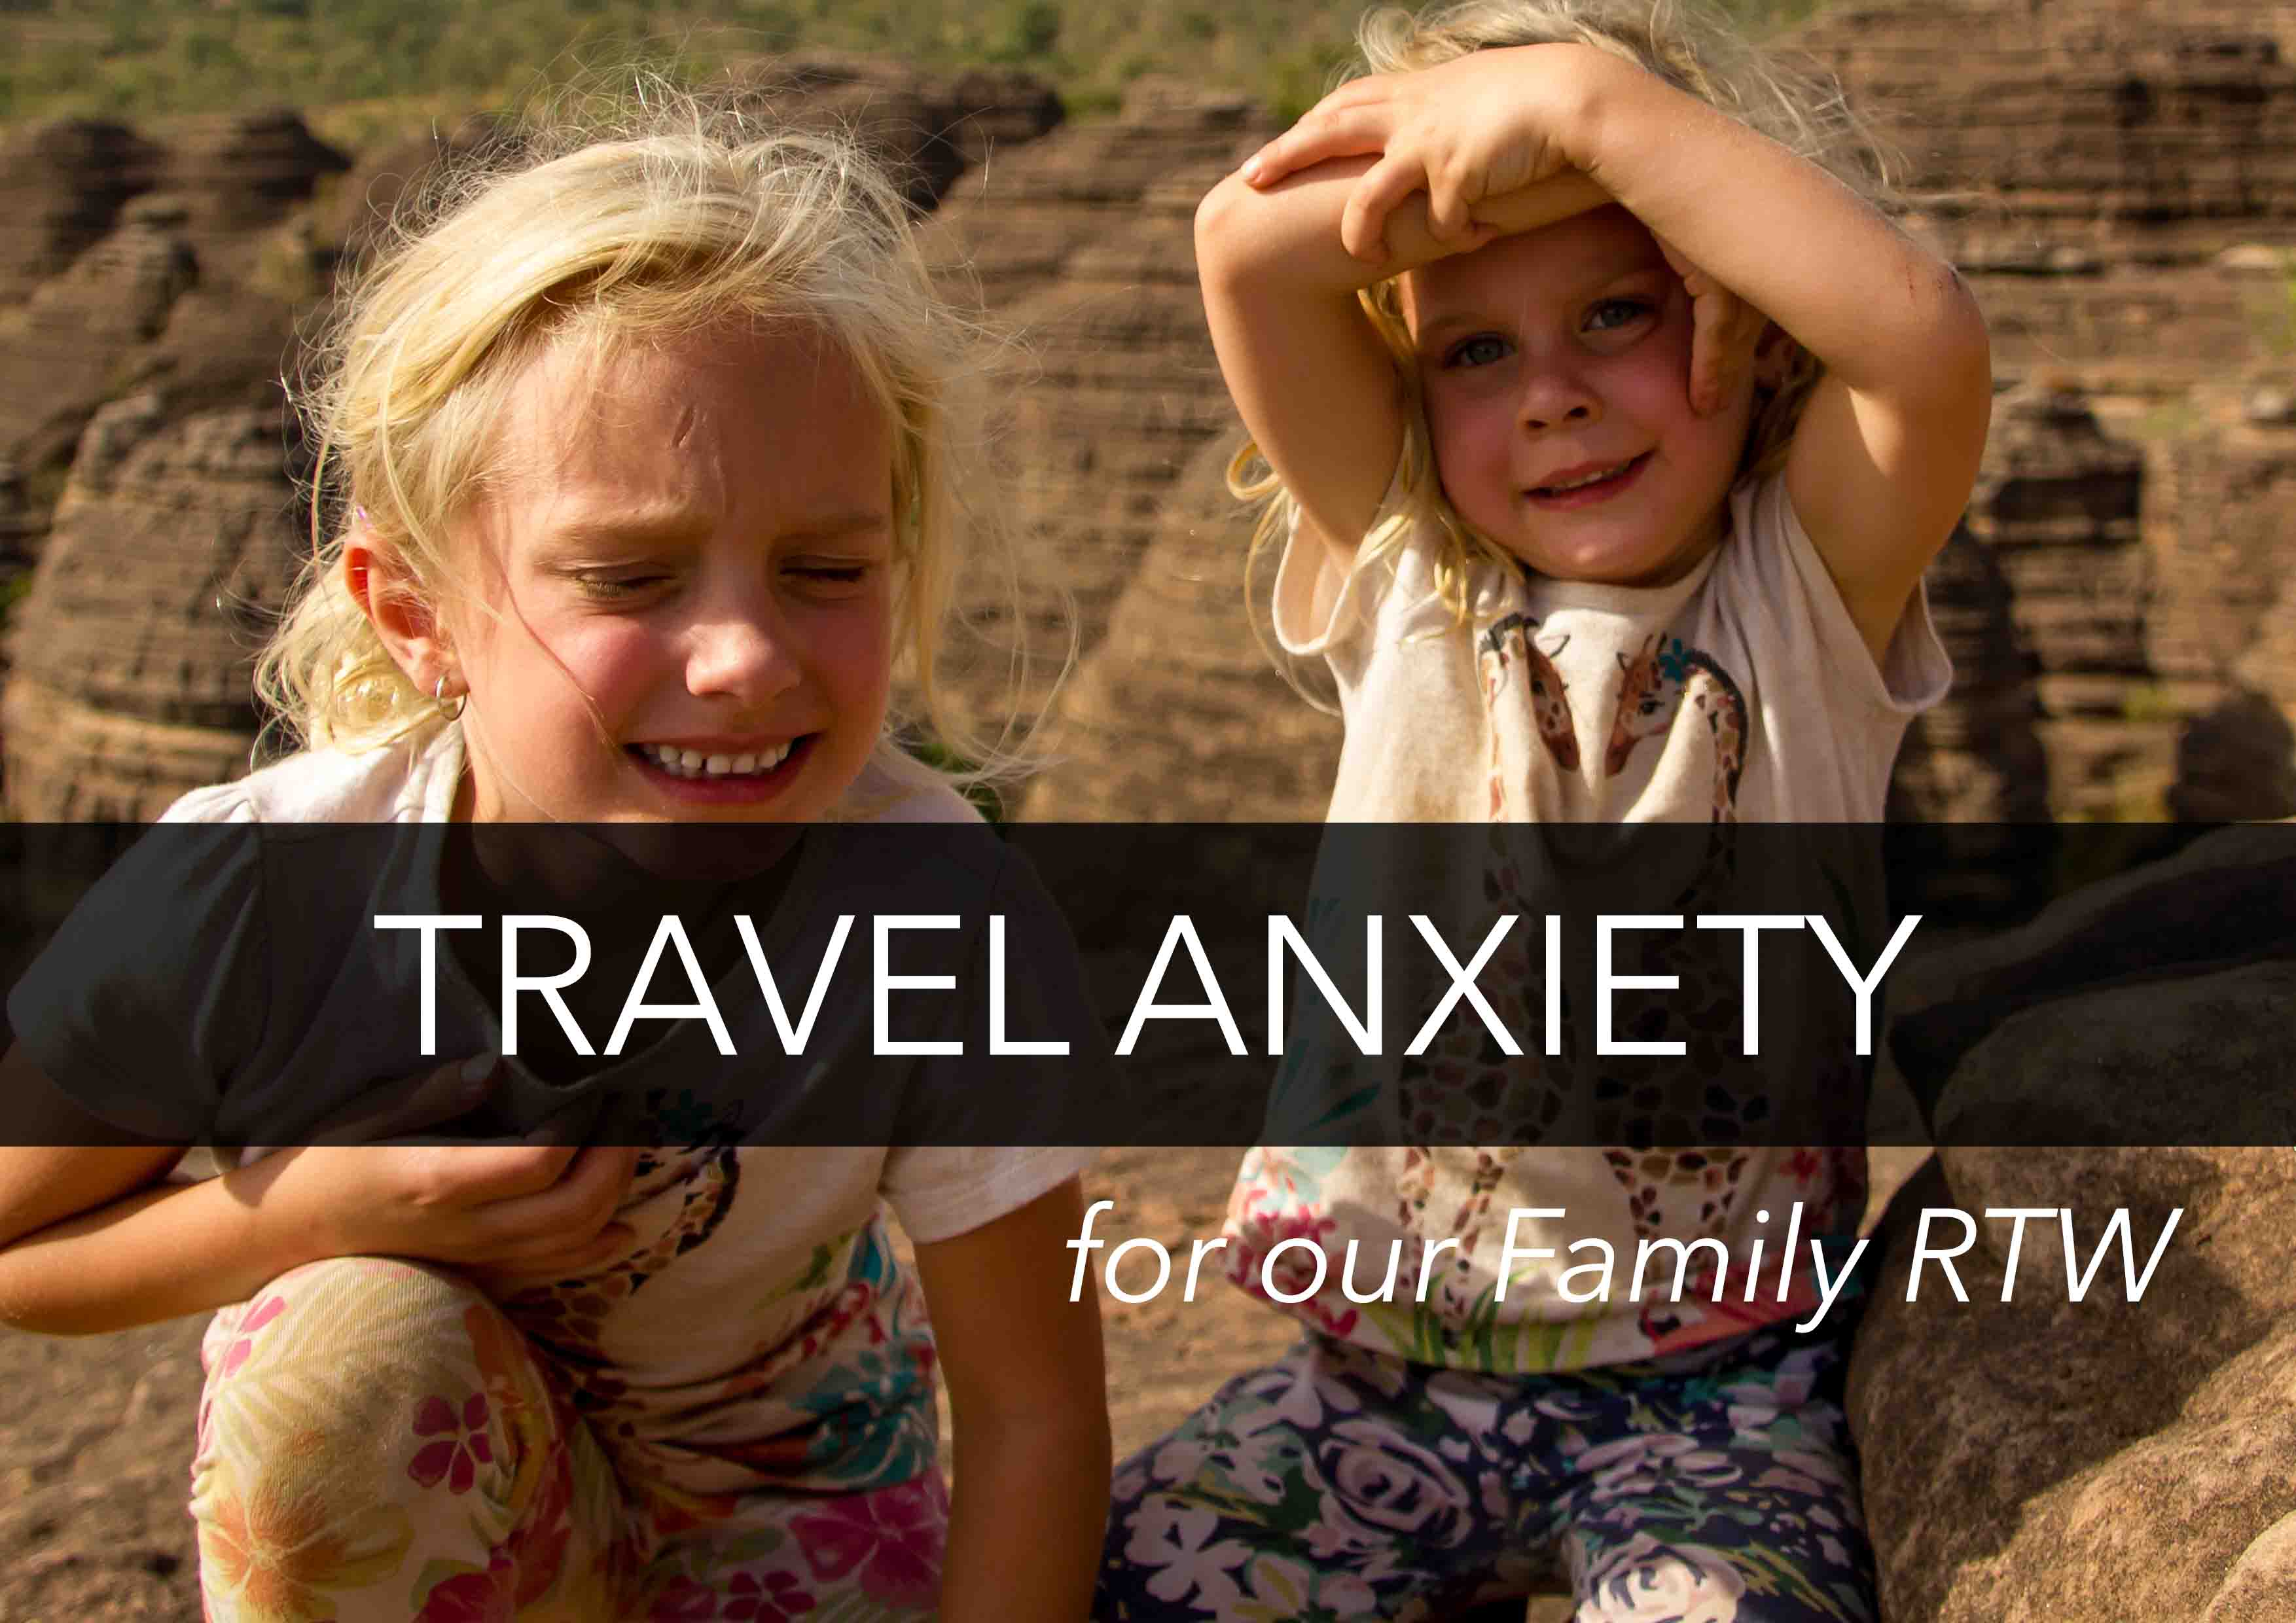 Travel anxiety about our family RTW